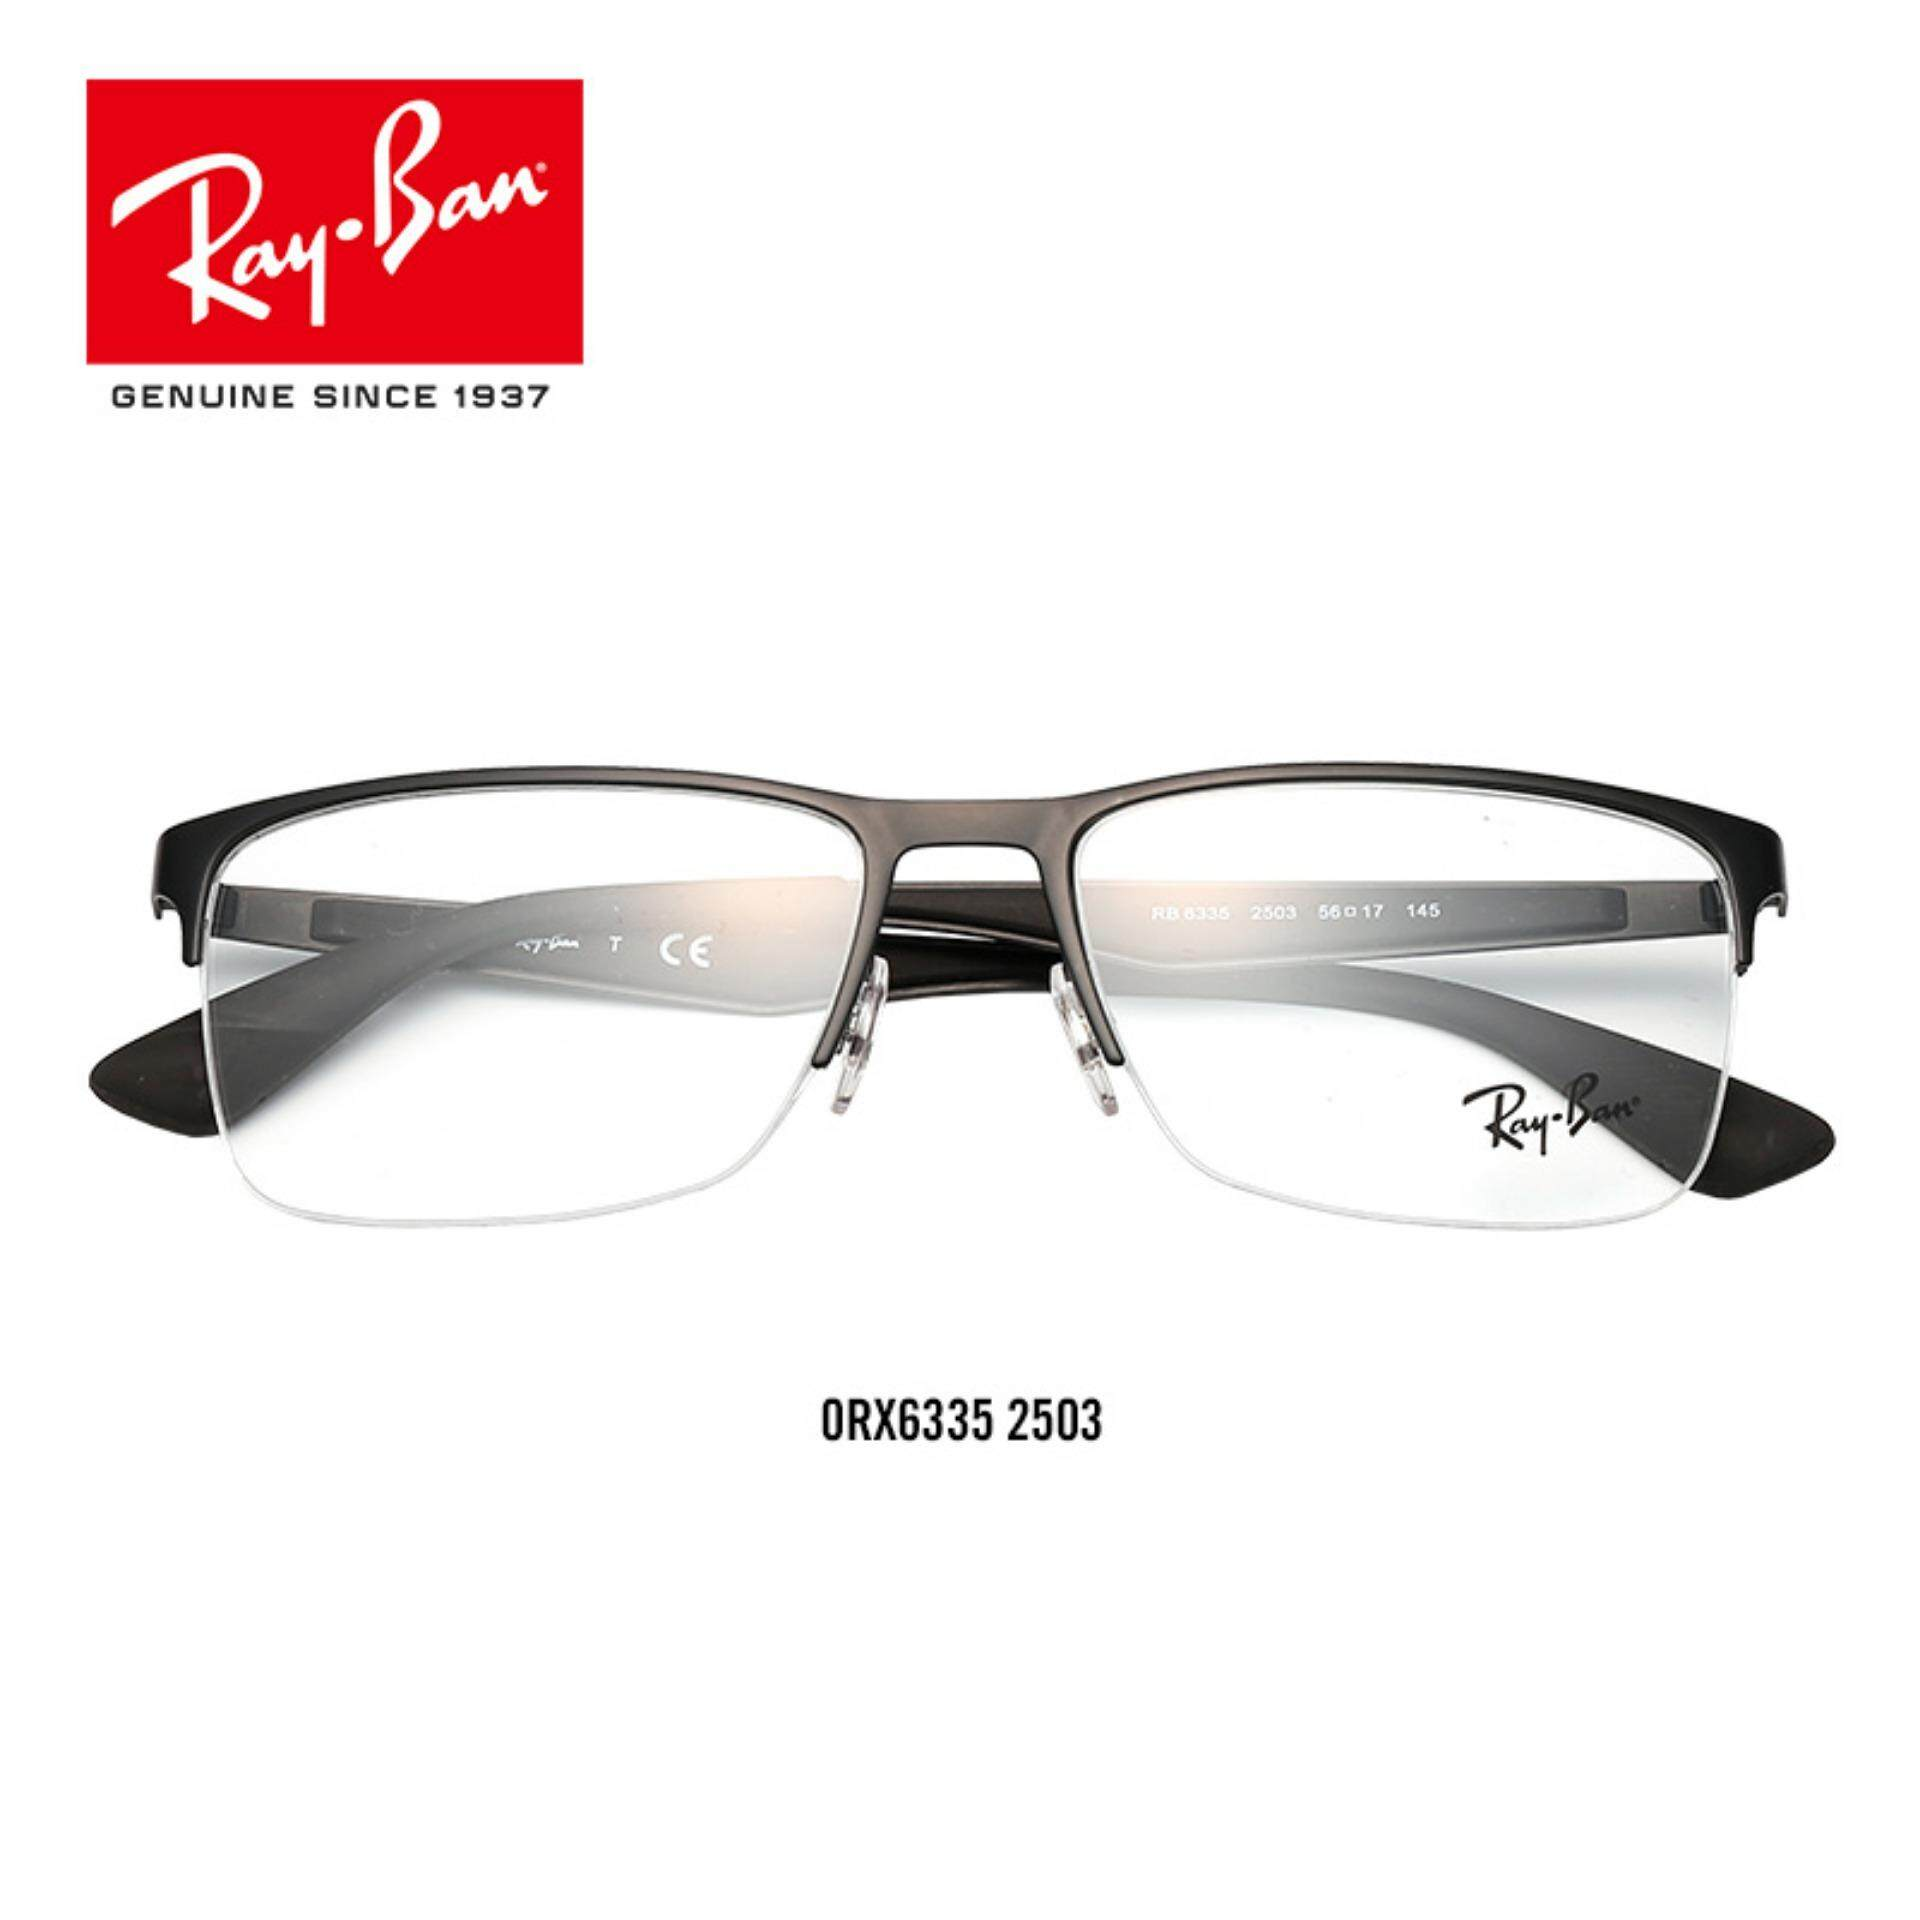 734ee7be513 Ray Ban Products for the Best Price in Malaysia